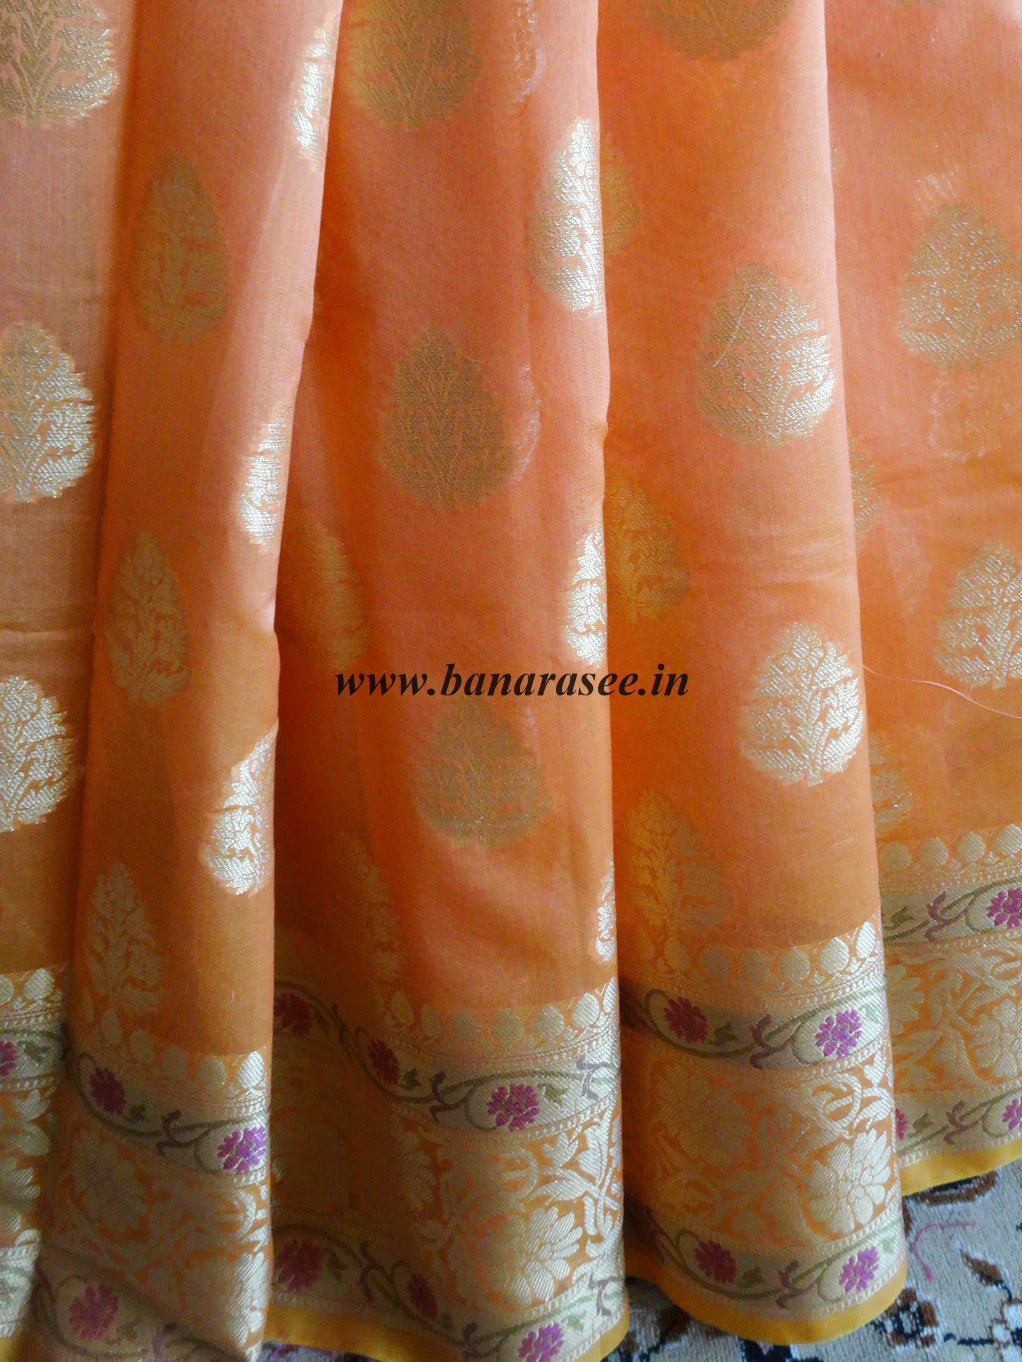 Banarasee/Banarasi Handloom Cotton Silk Mix Paithani Border Sari-Orange